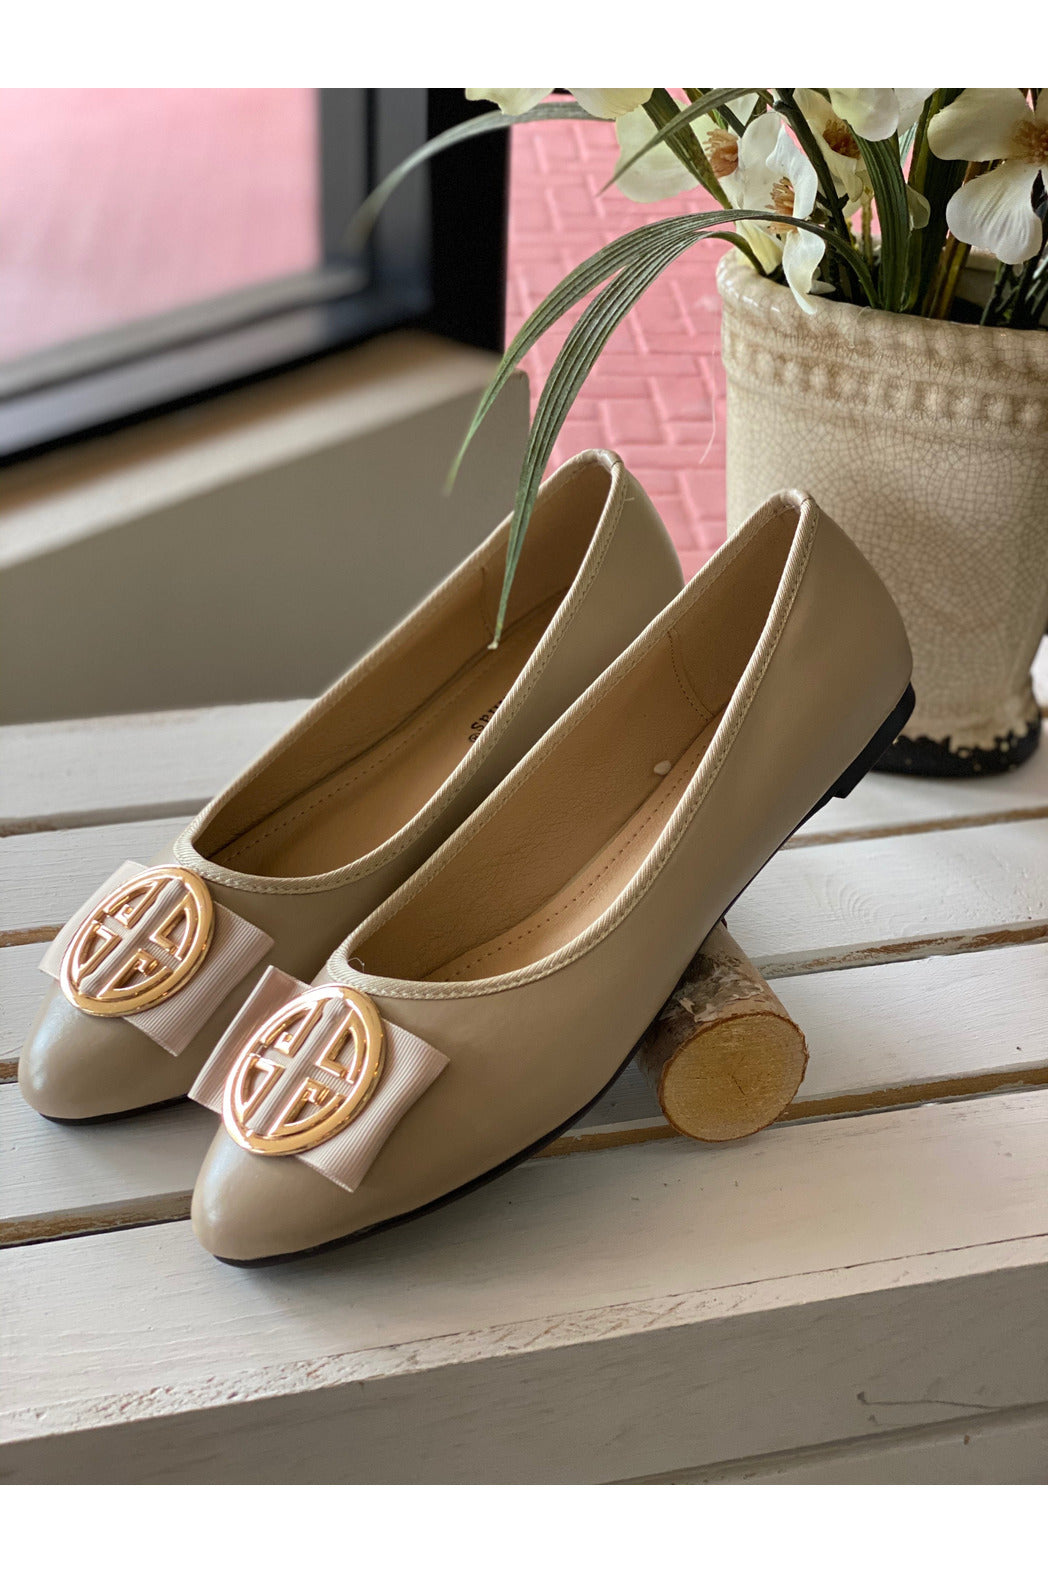 Cream Ballerina Flat Shoe With Gold Medallion